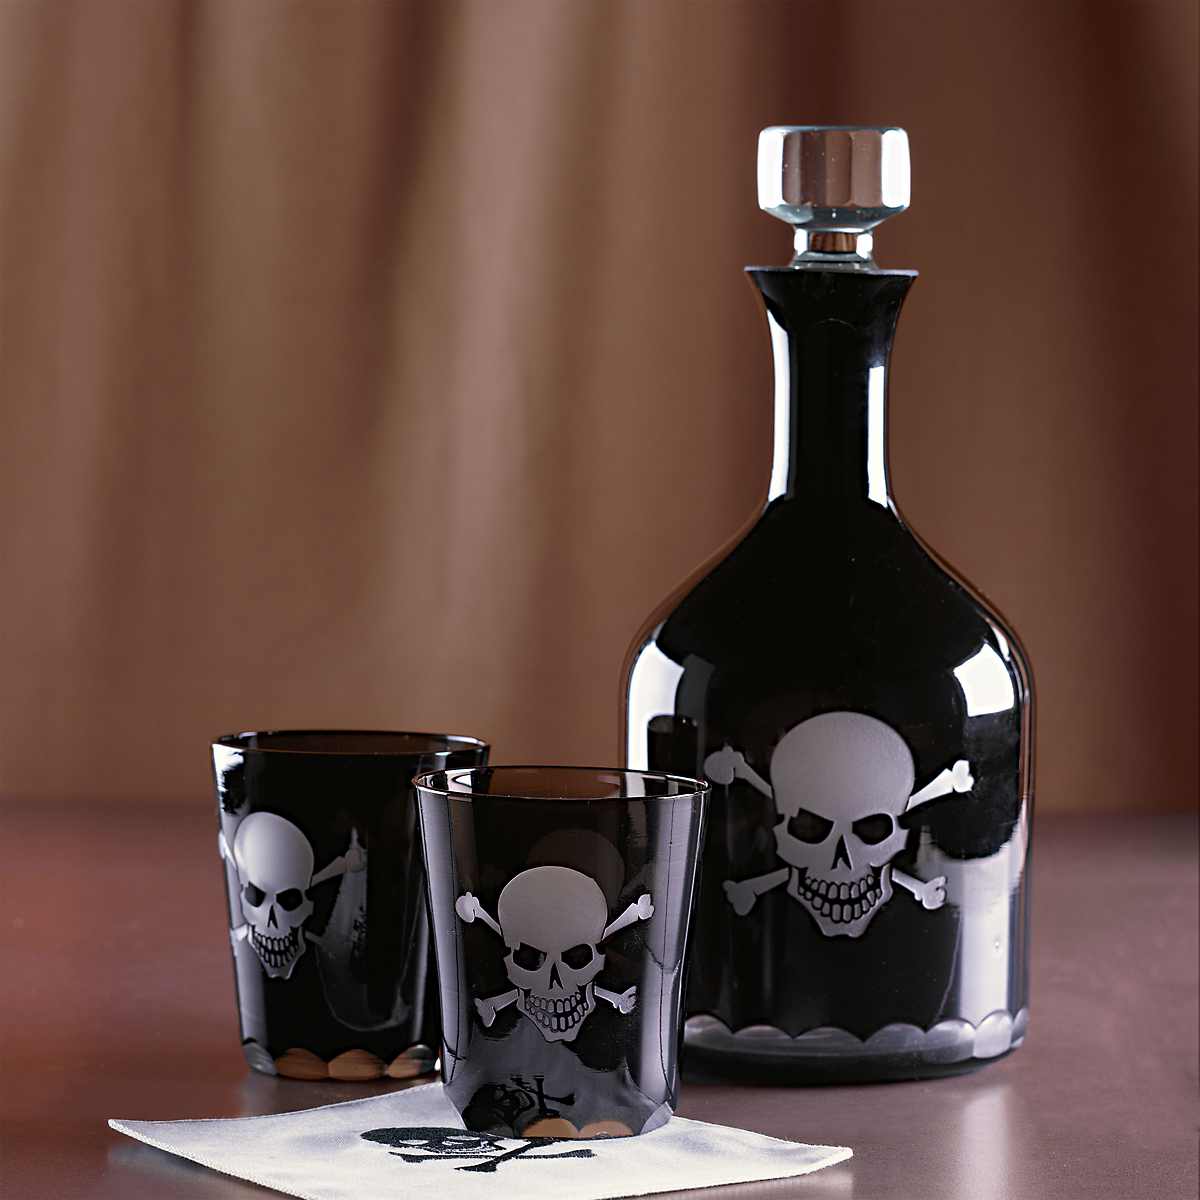 Skull decanter glasses gump 39 s Classy halloween decorations